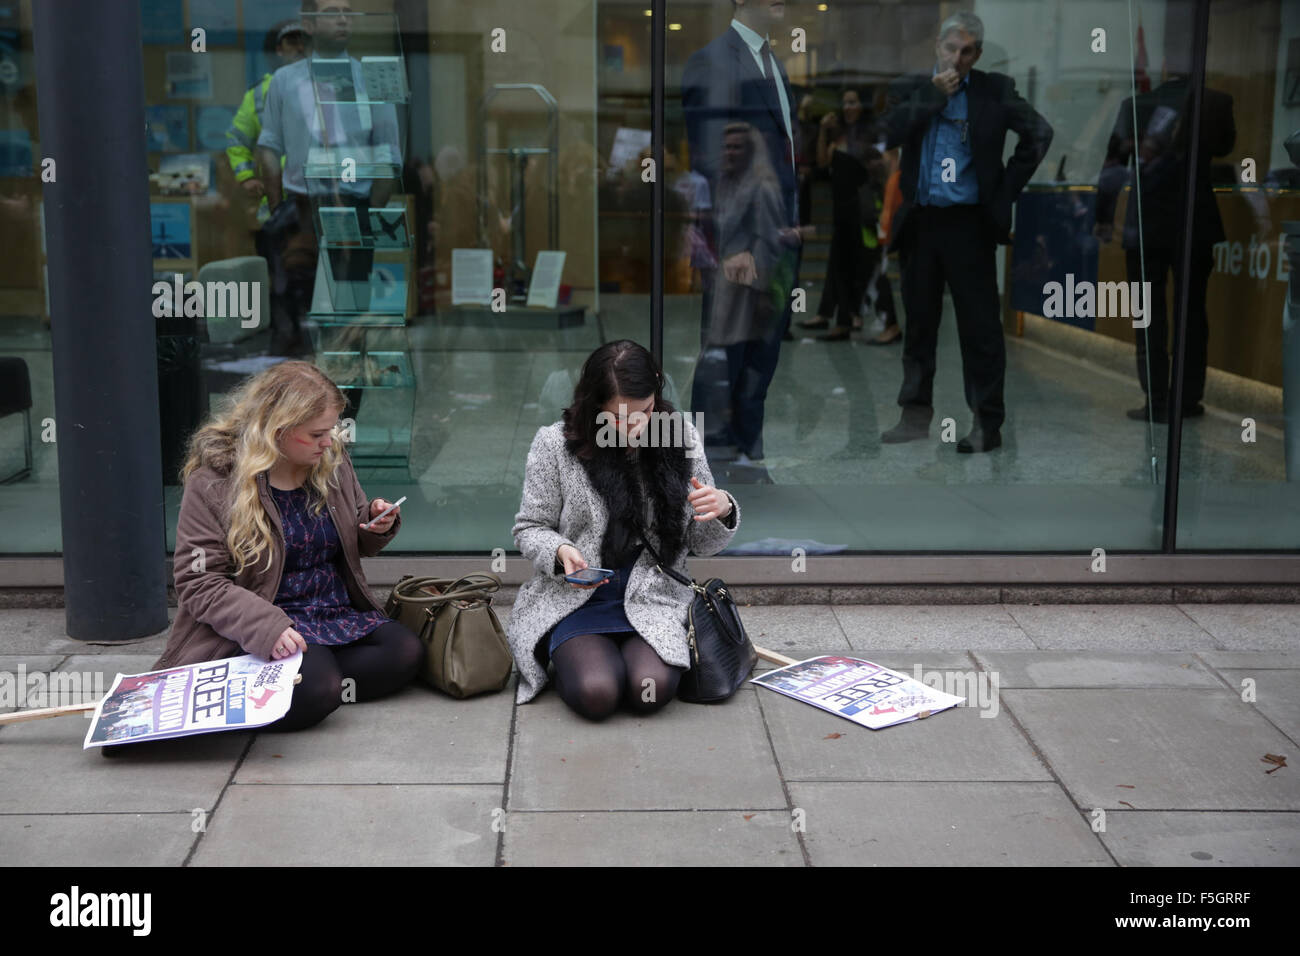 London, UK. 4th November, 2015. A student protest in central London against fees and many other issues. copyright - Stock Image